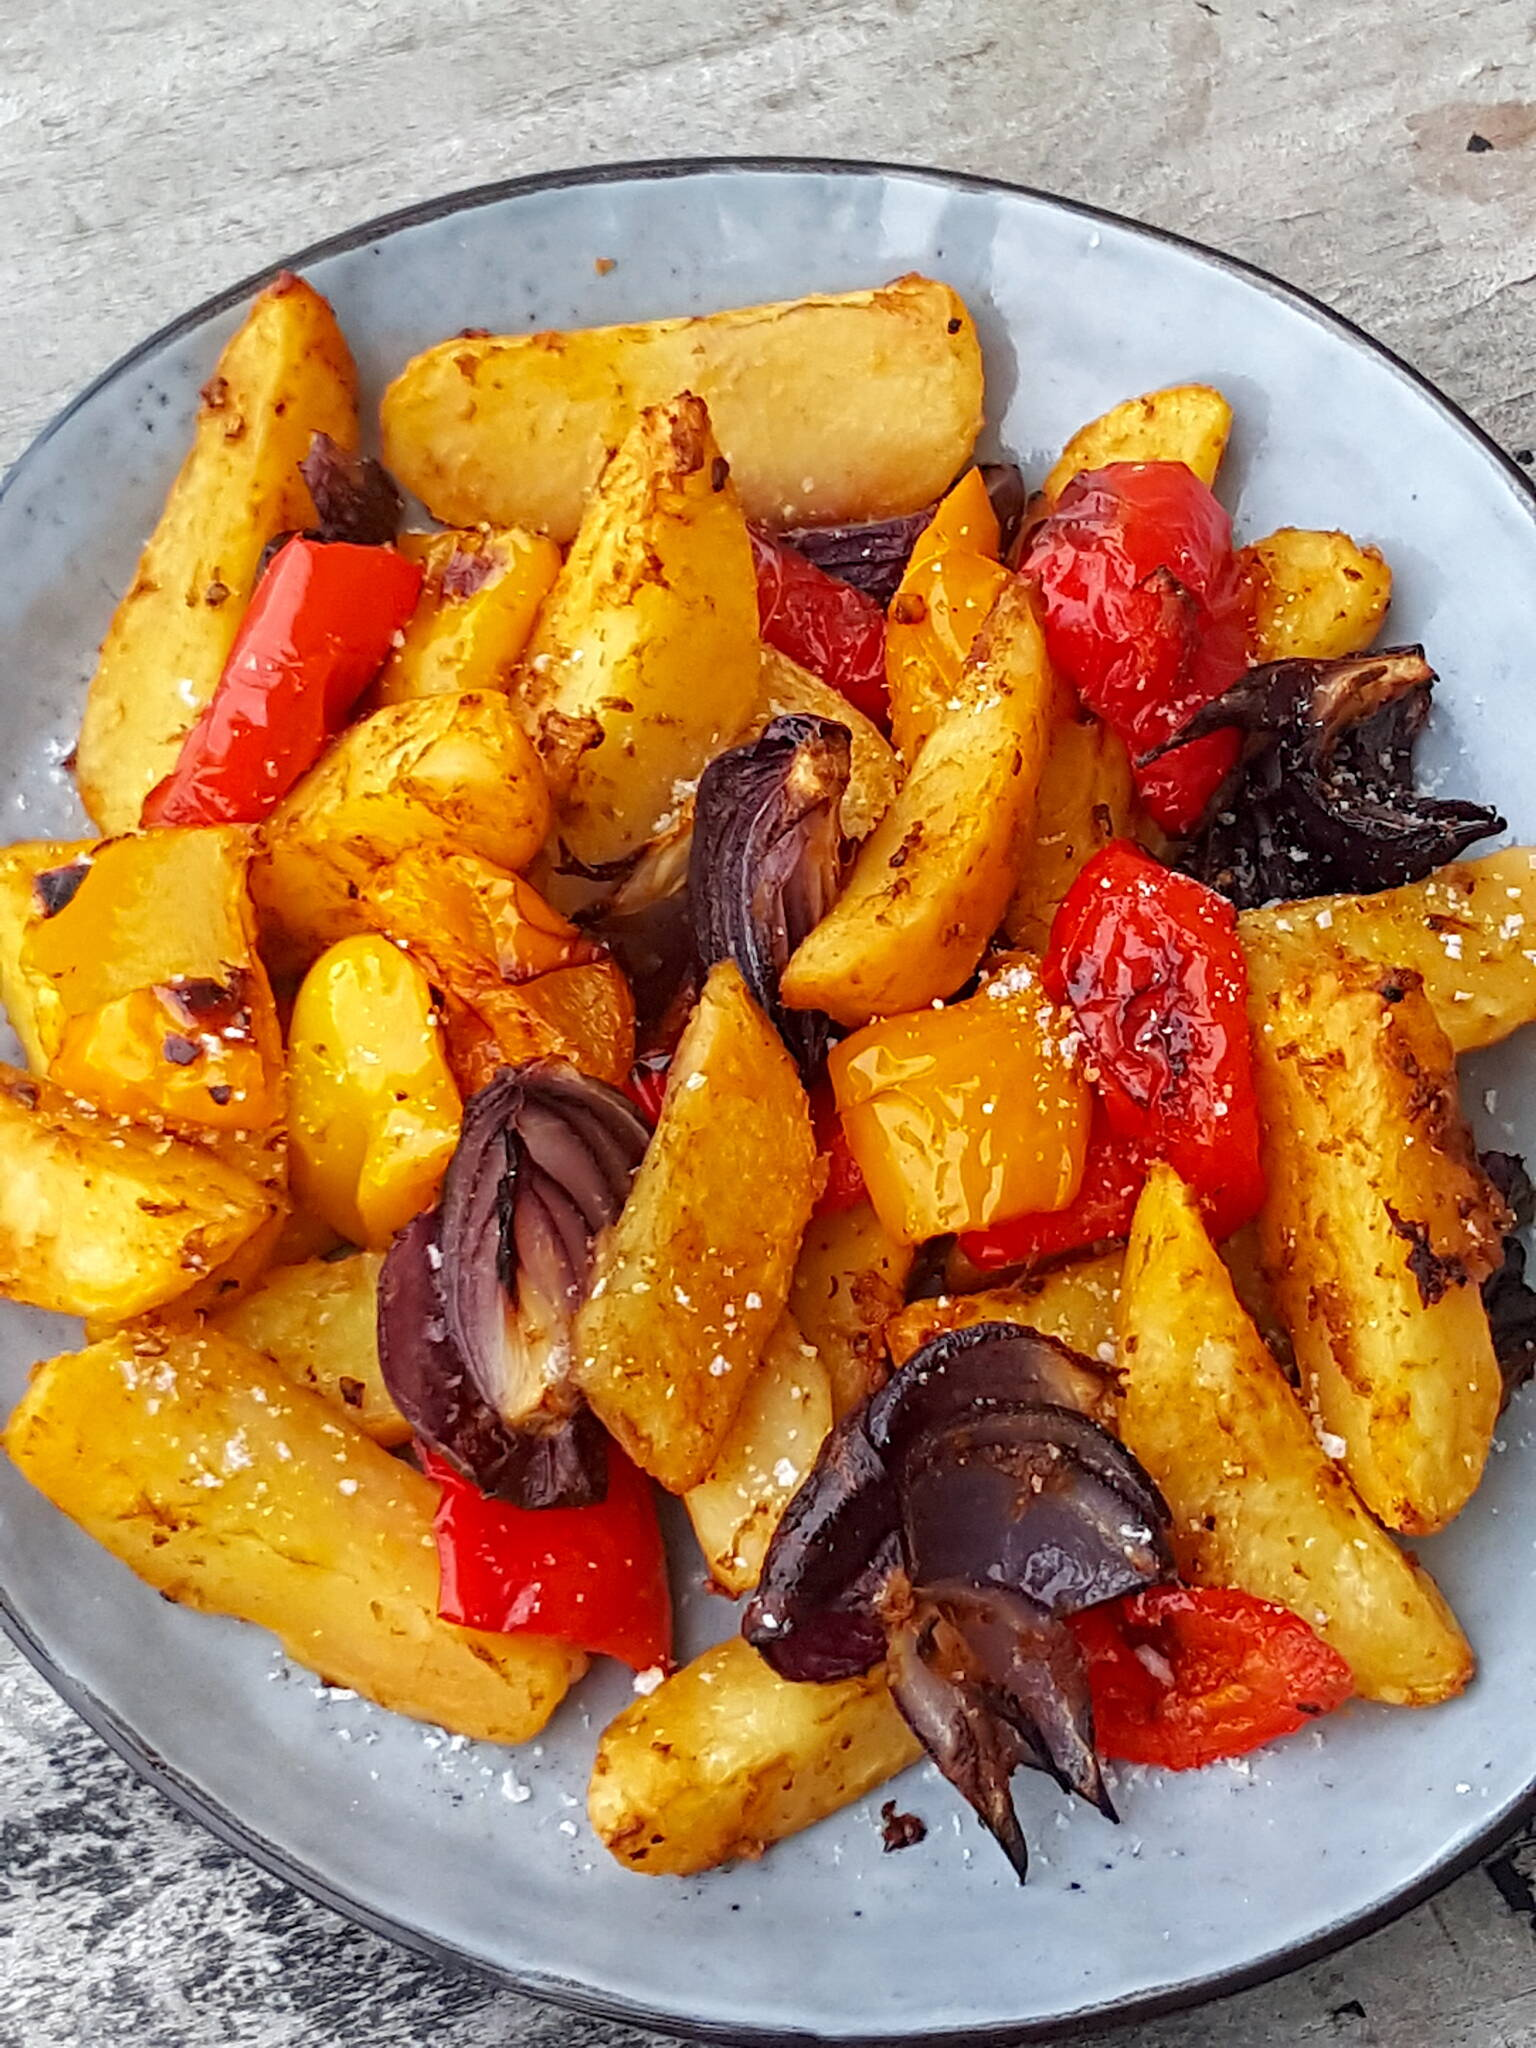 Spicy Potato, Red Onion & Pepper Bake